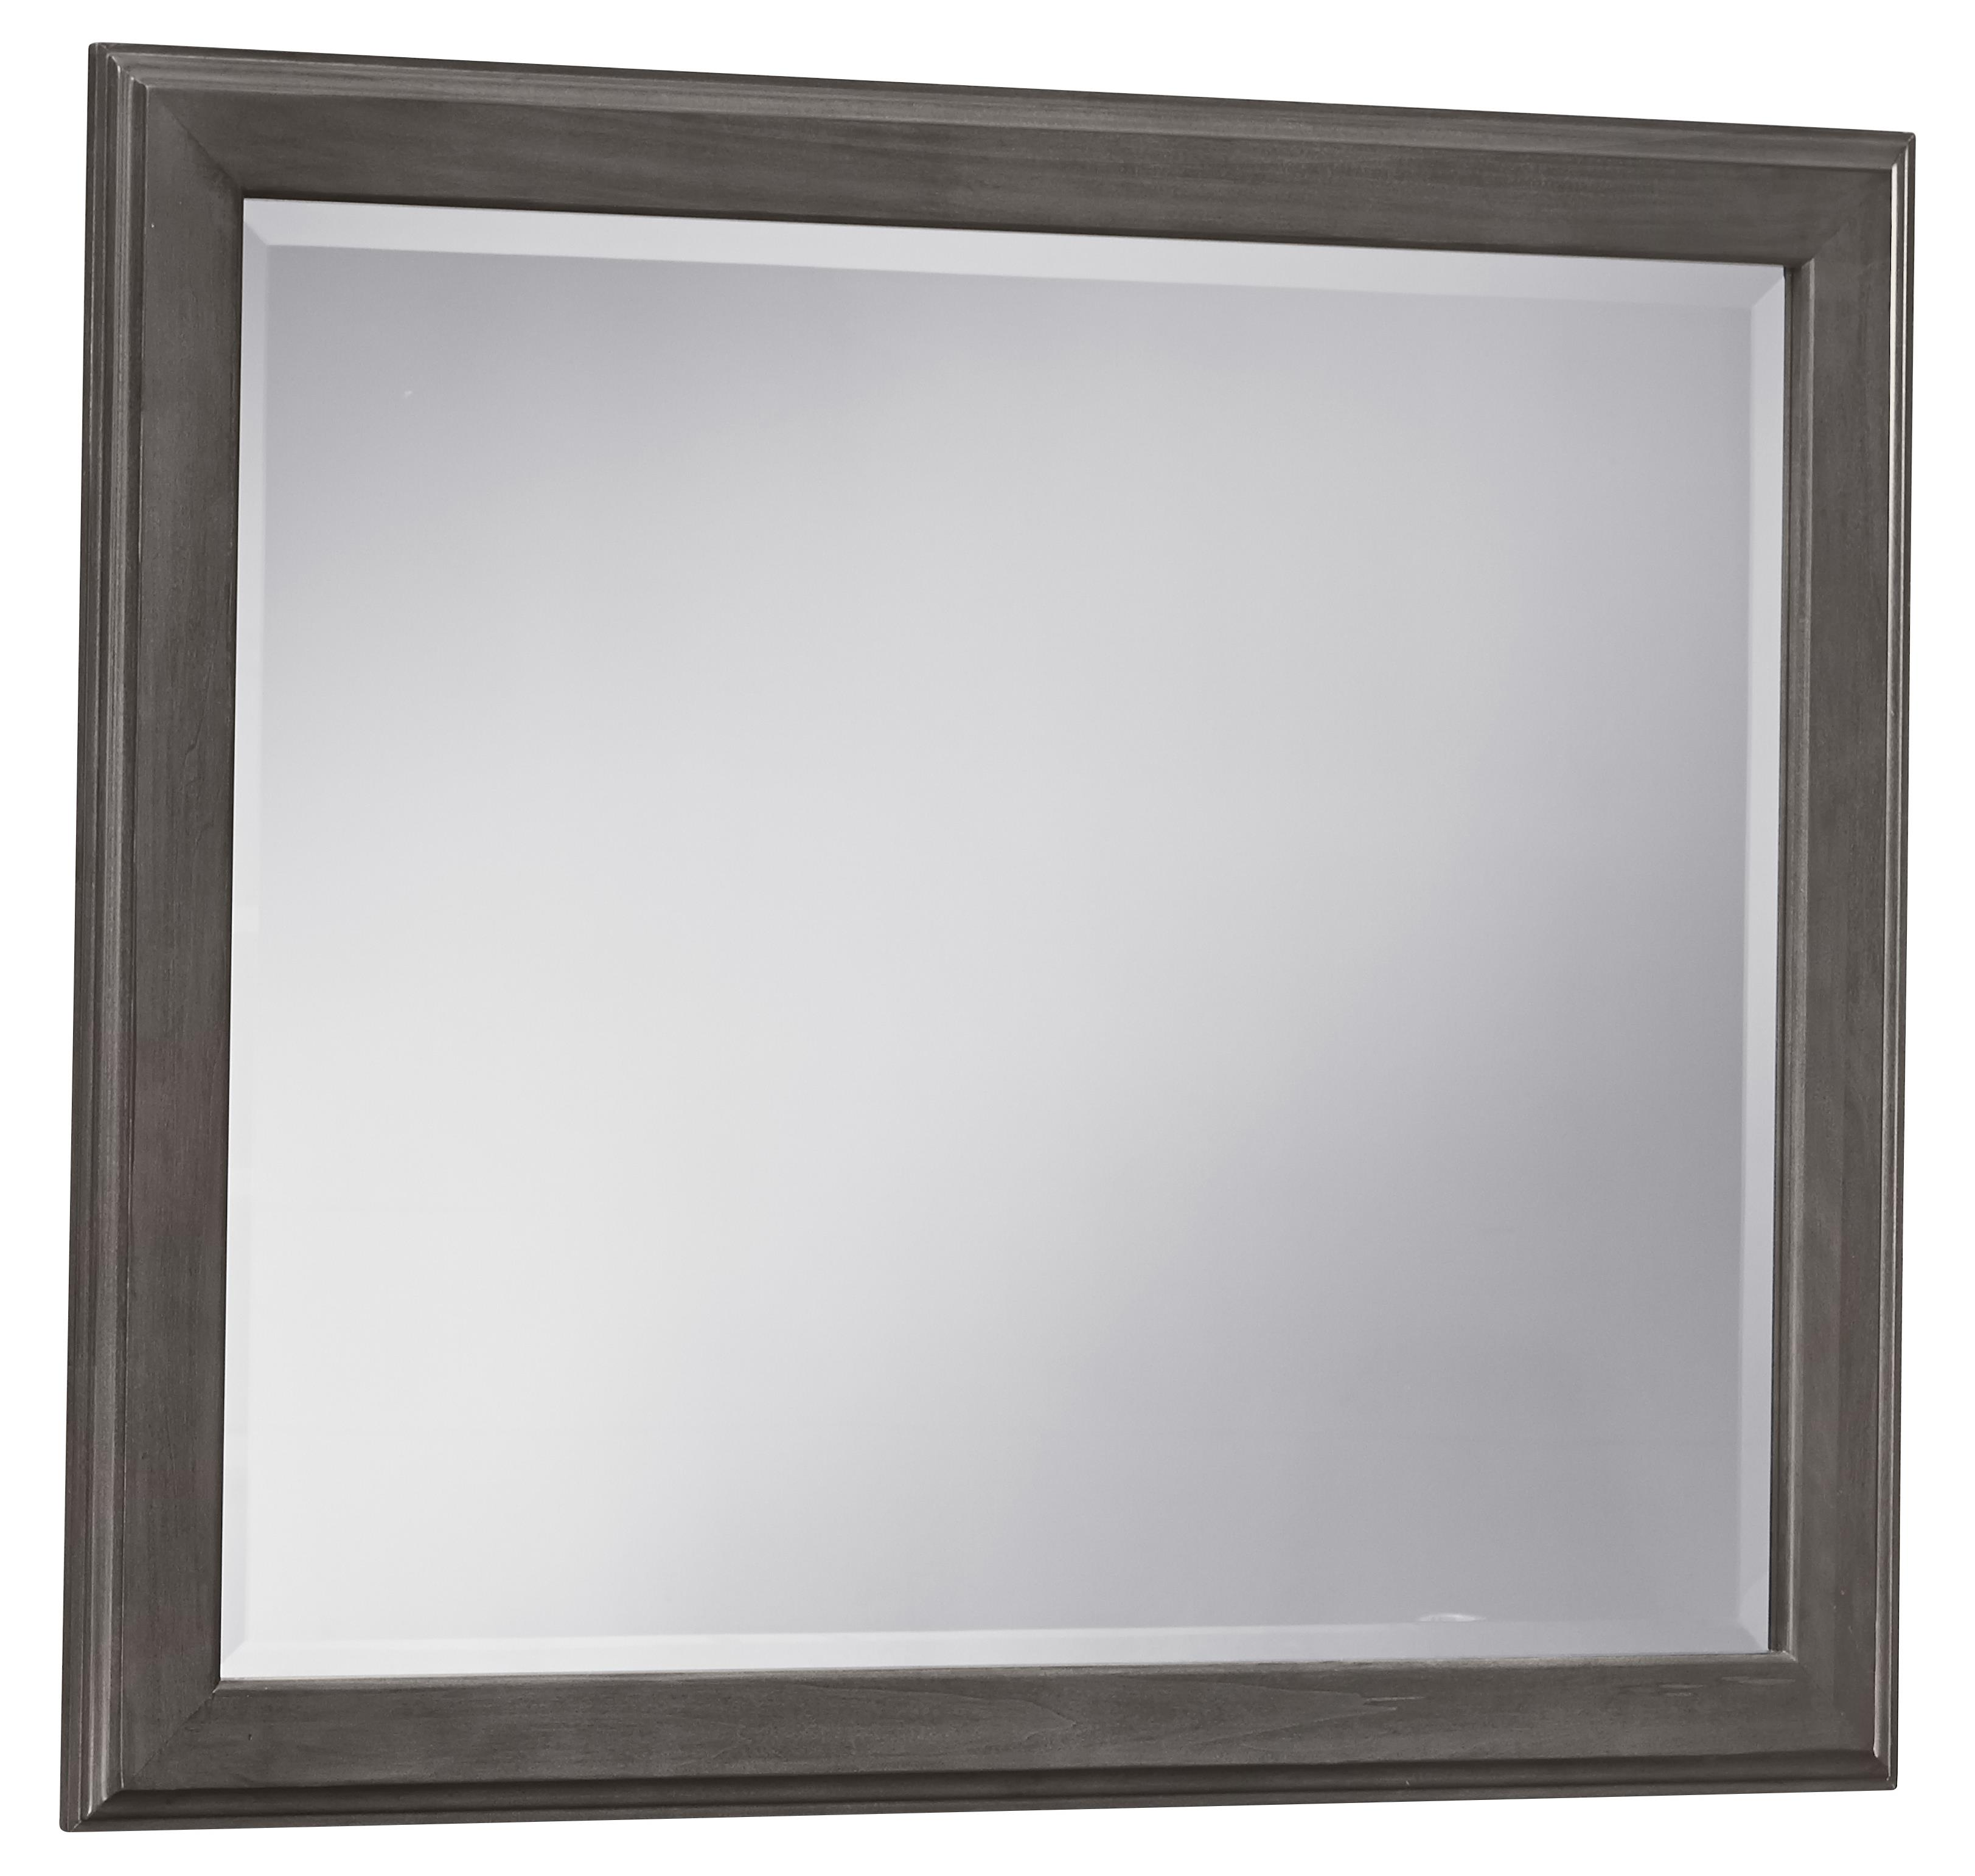 Vaughan Bassett Commentary Large Landscape Mirror - Item Number: 394-445